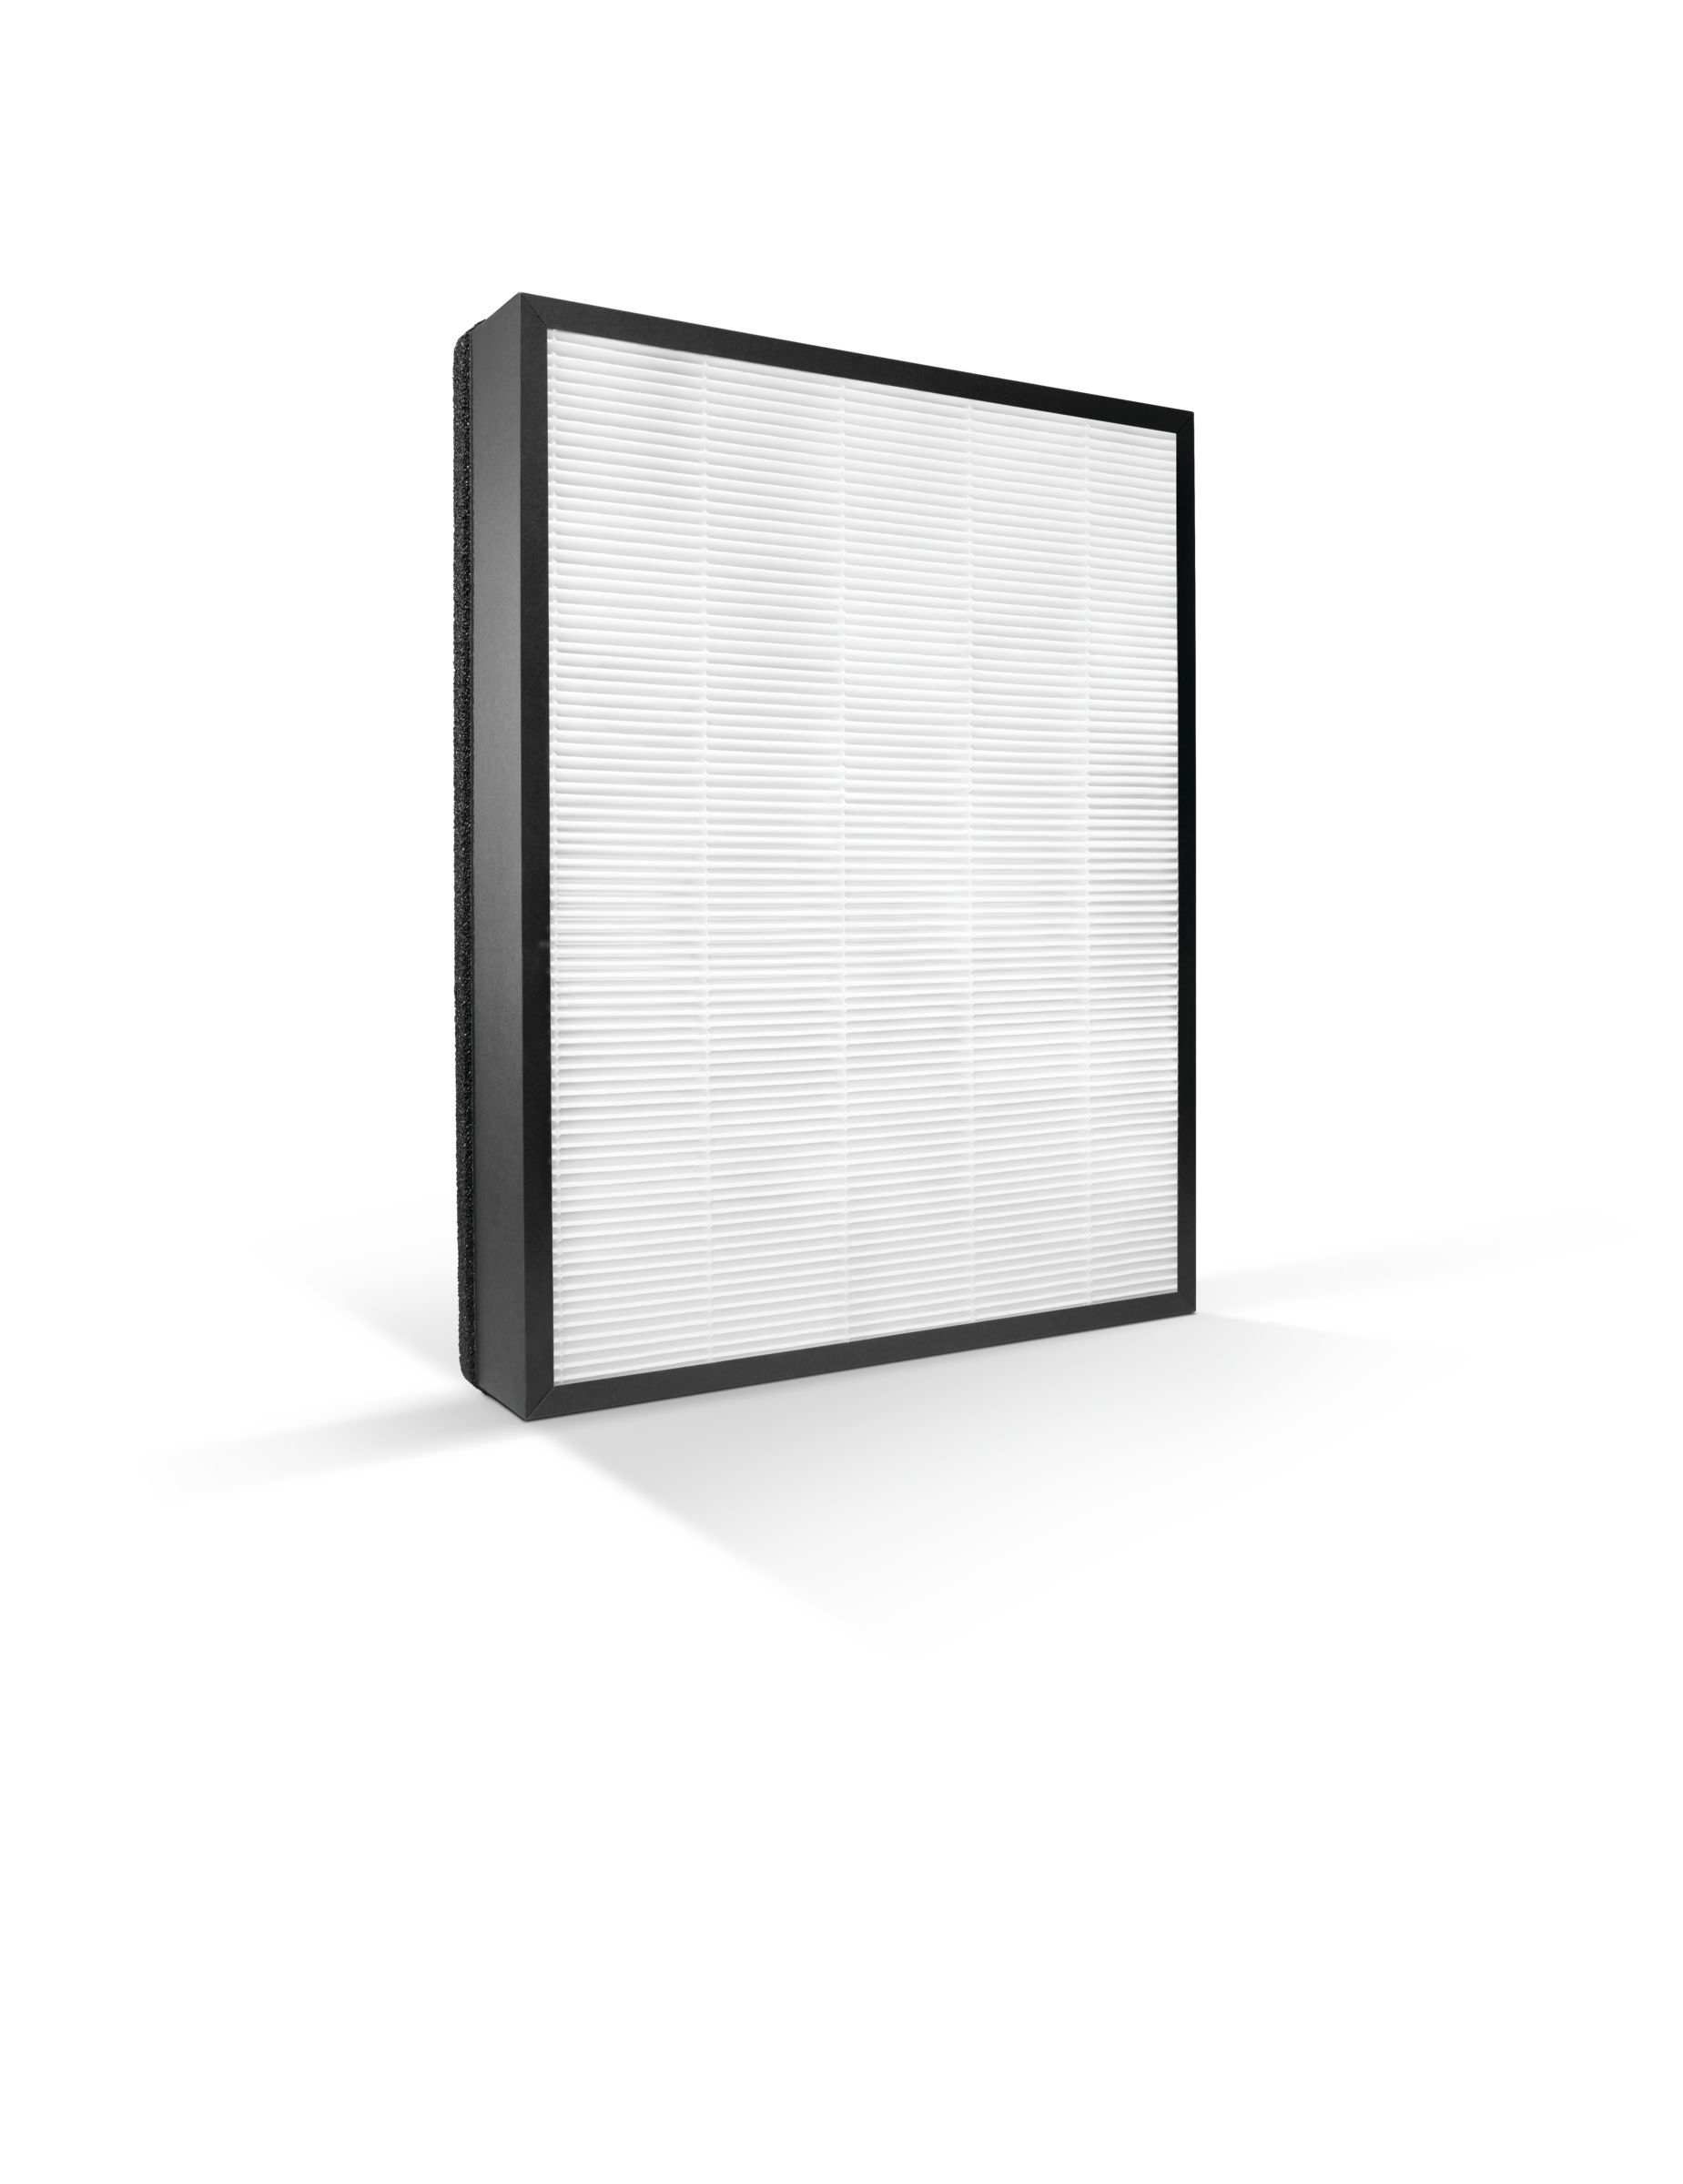 Philips FY 3433/10 Hepa-Filter